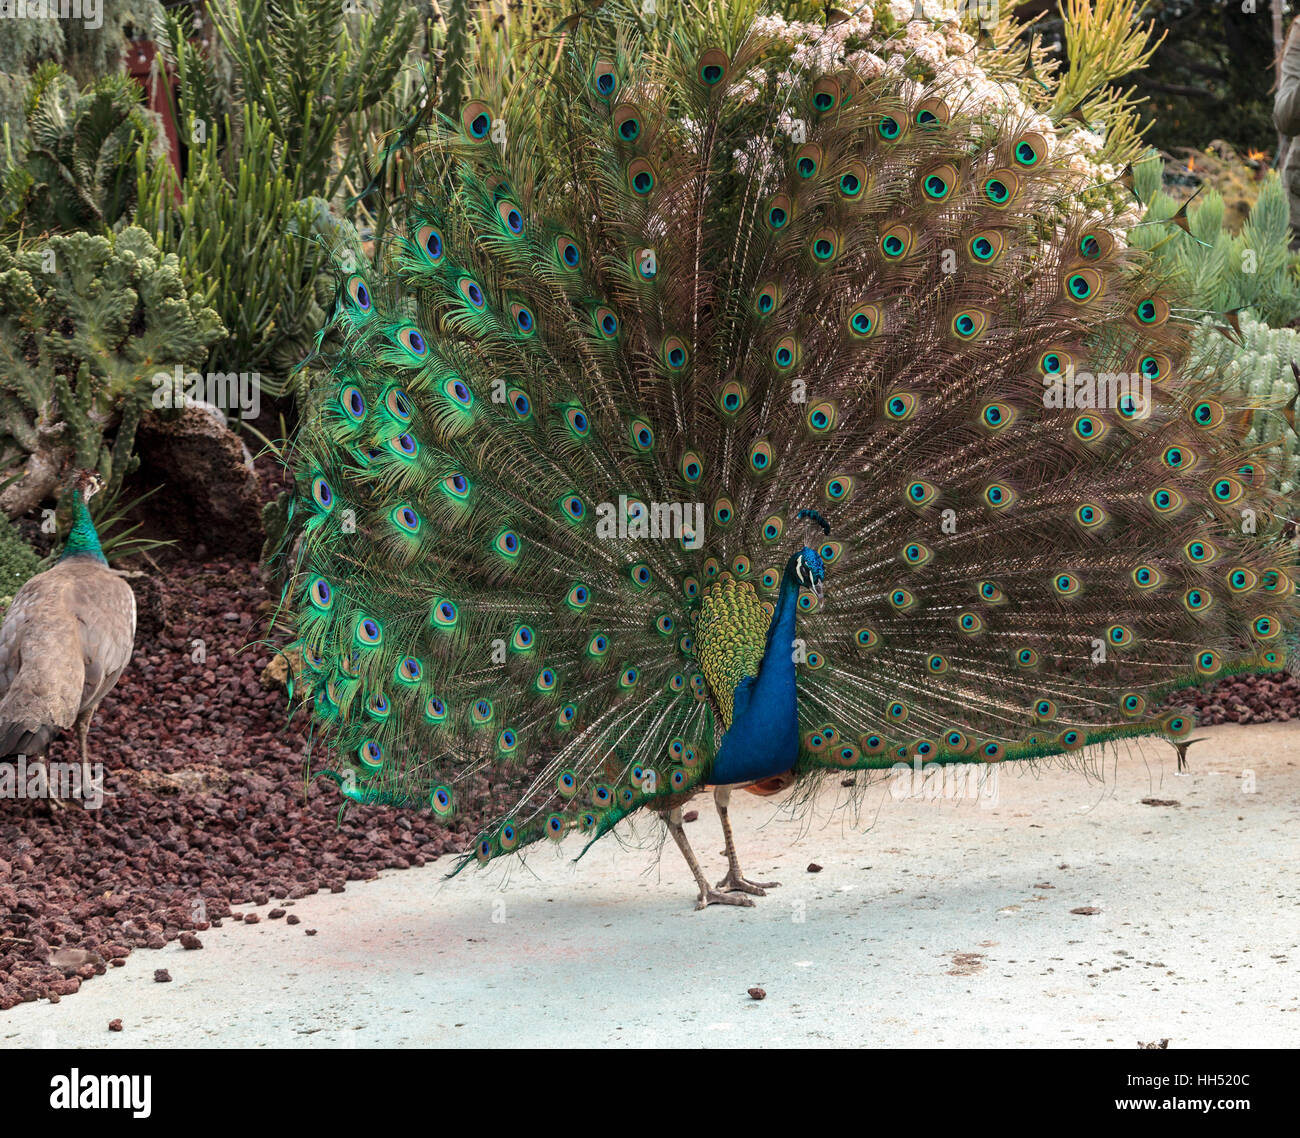 Mating display of a blue and green male peacock Pavo muticus in a botanical garden - Stock Image